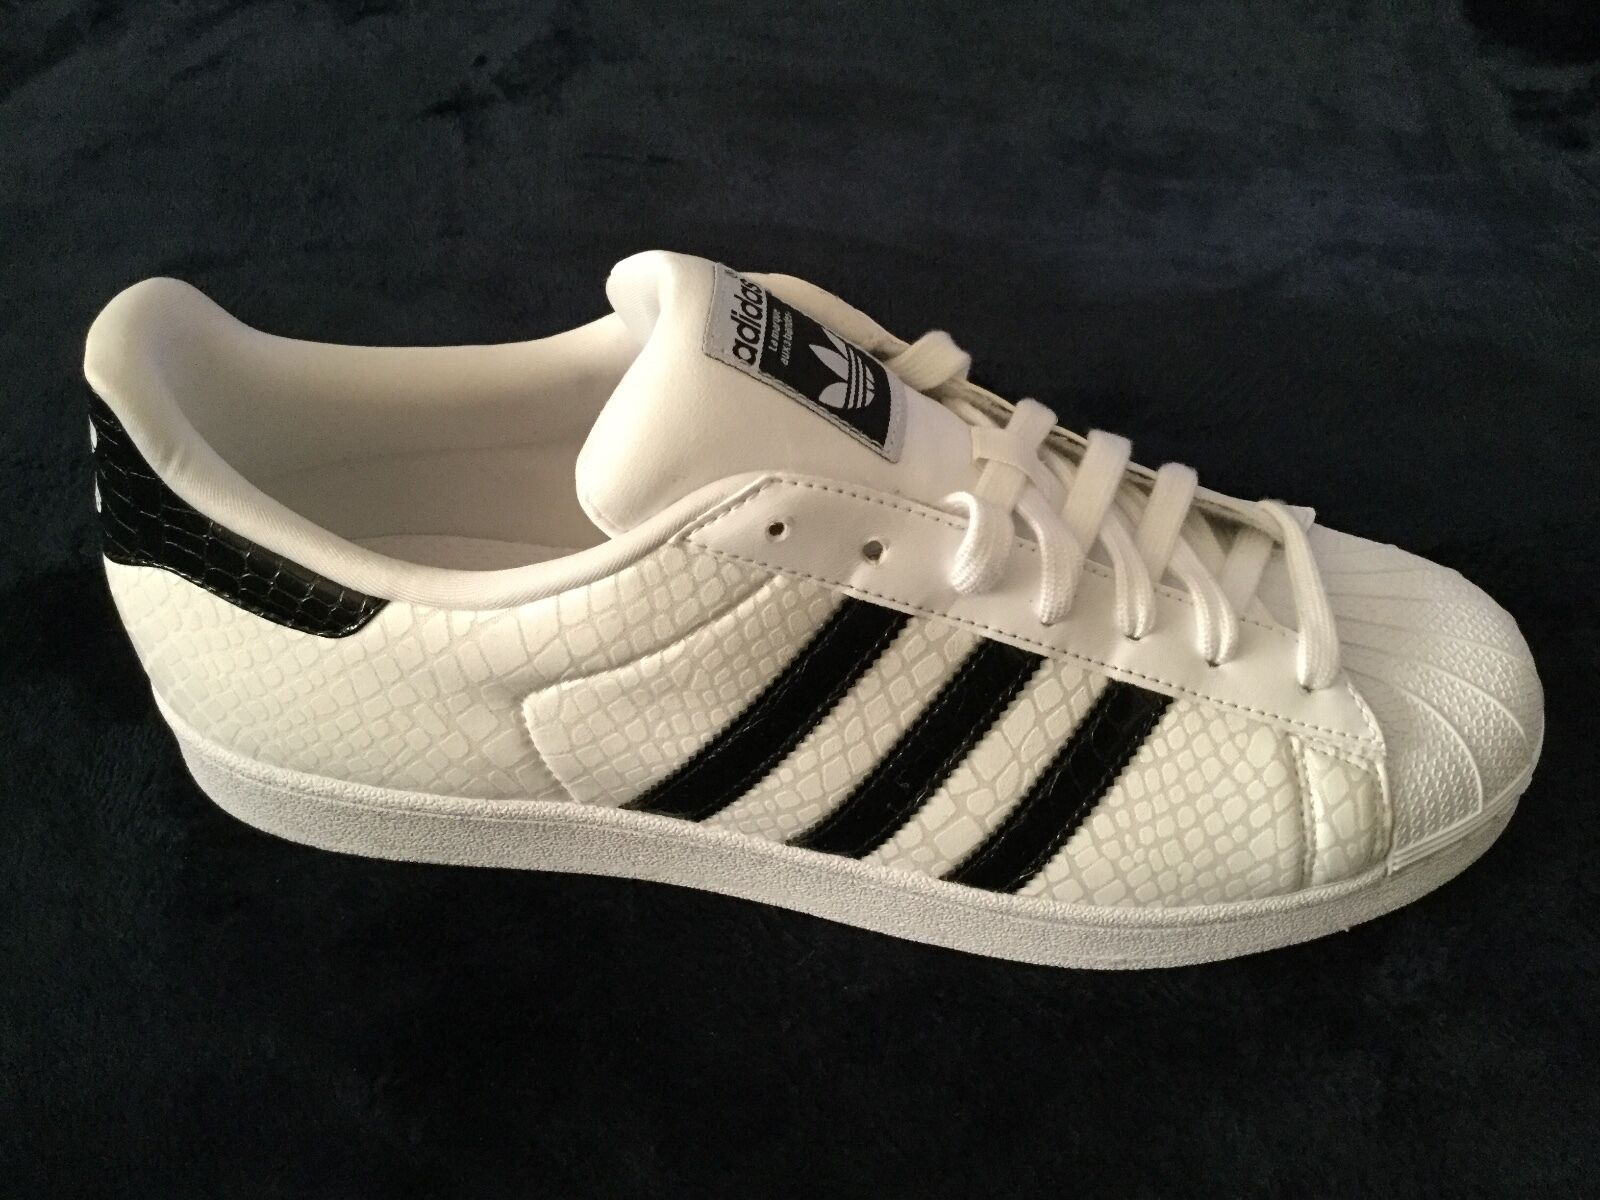 New Fashion Adidas Originals Superstar Men's Fashion New Sneakers Shoes Snake White 11.5 a05784